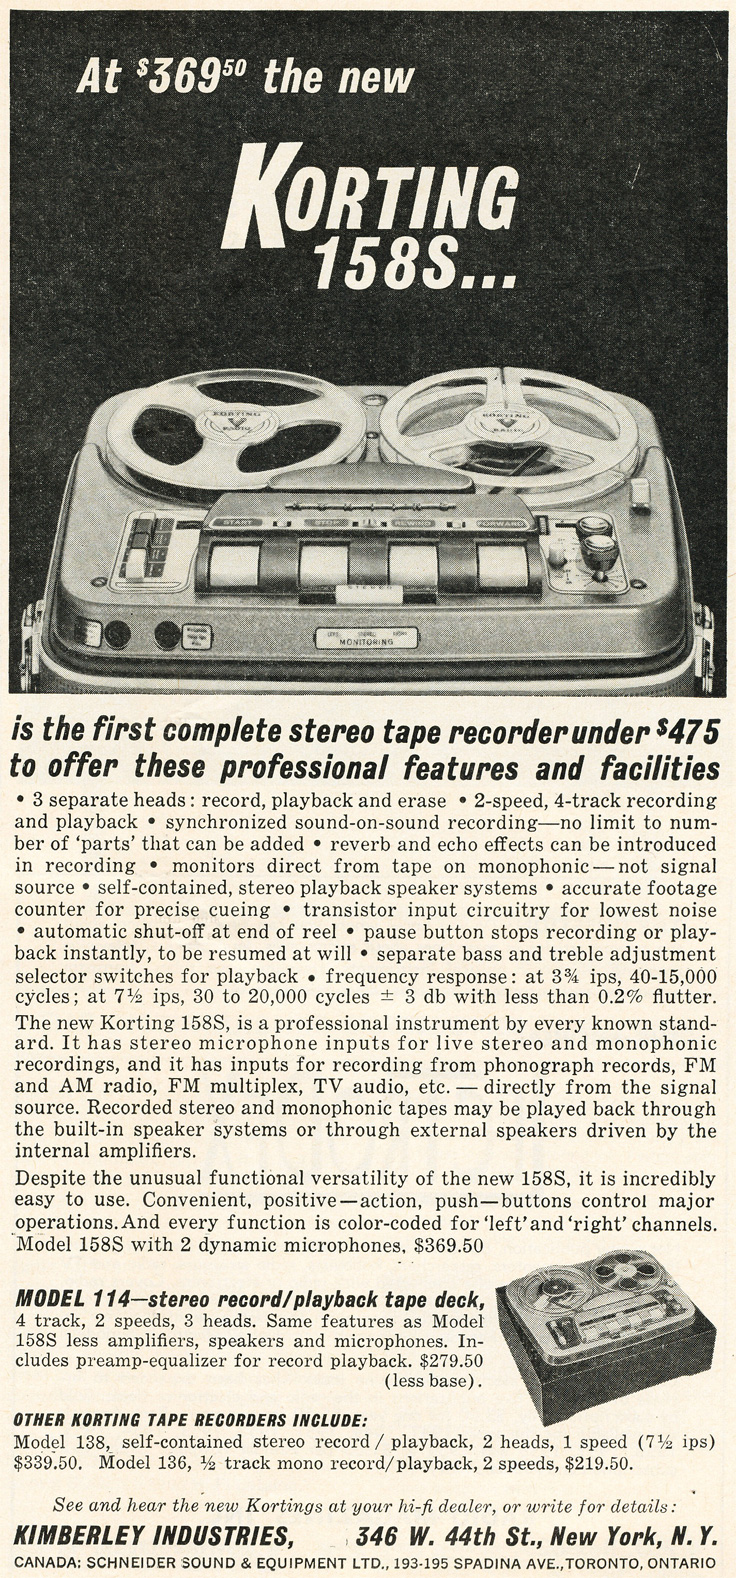 1961 ad for Korting reel to reel tape recorders in   Reel2ReelTexas.com's vintage recording collection